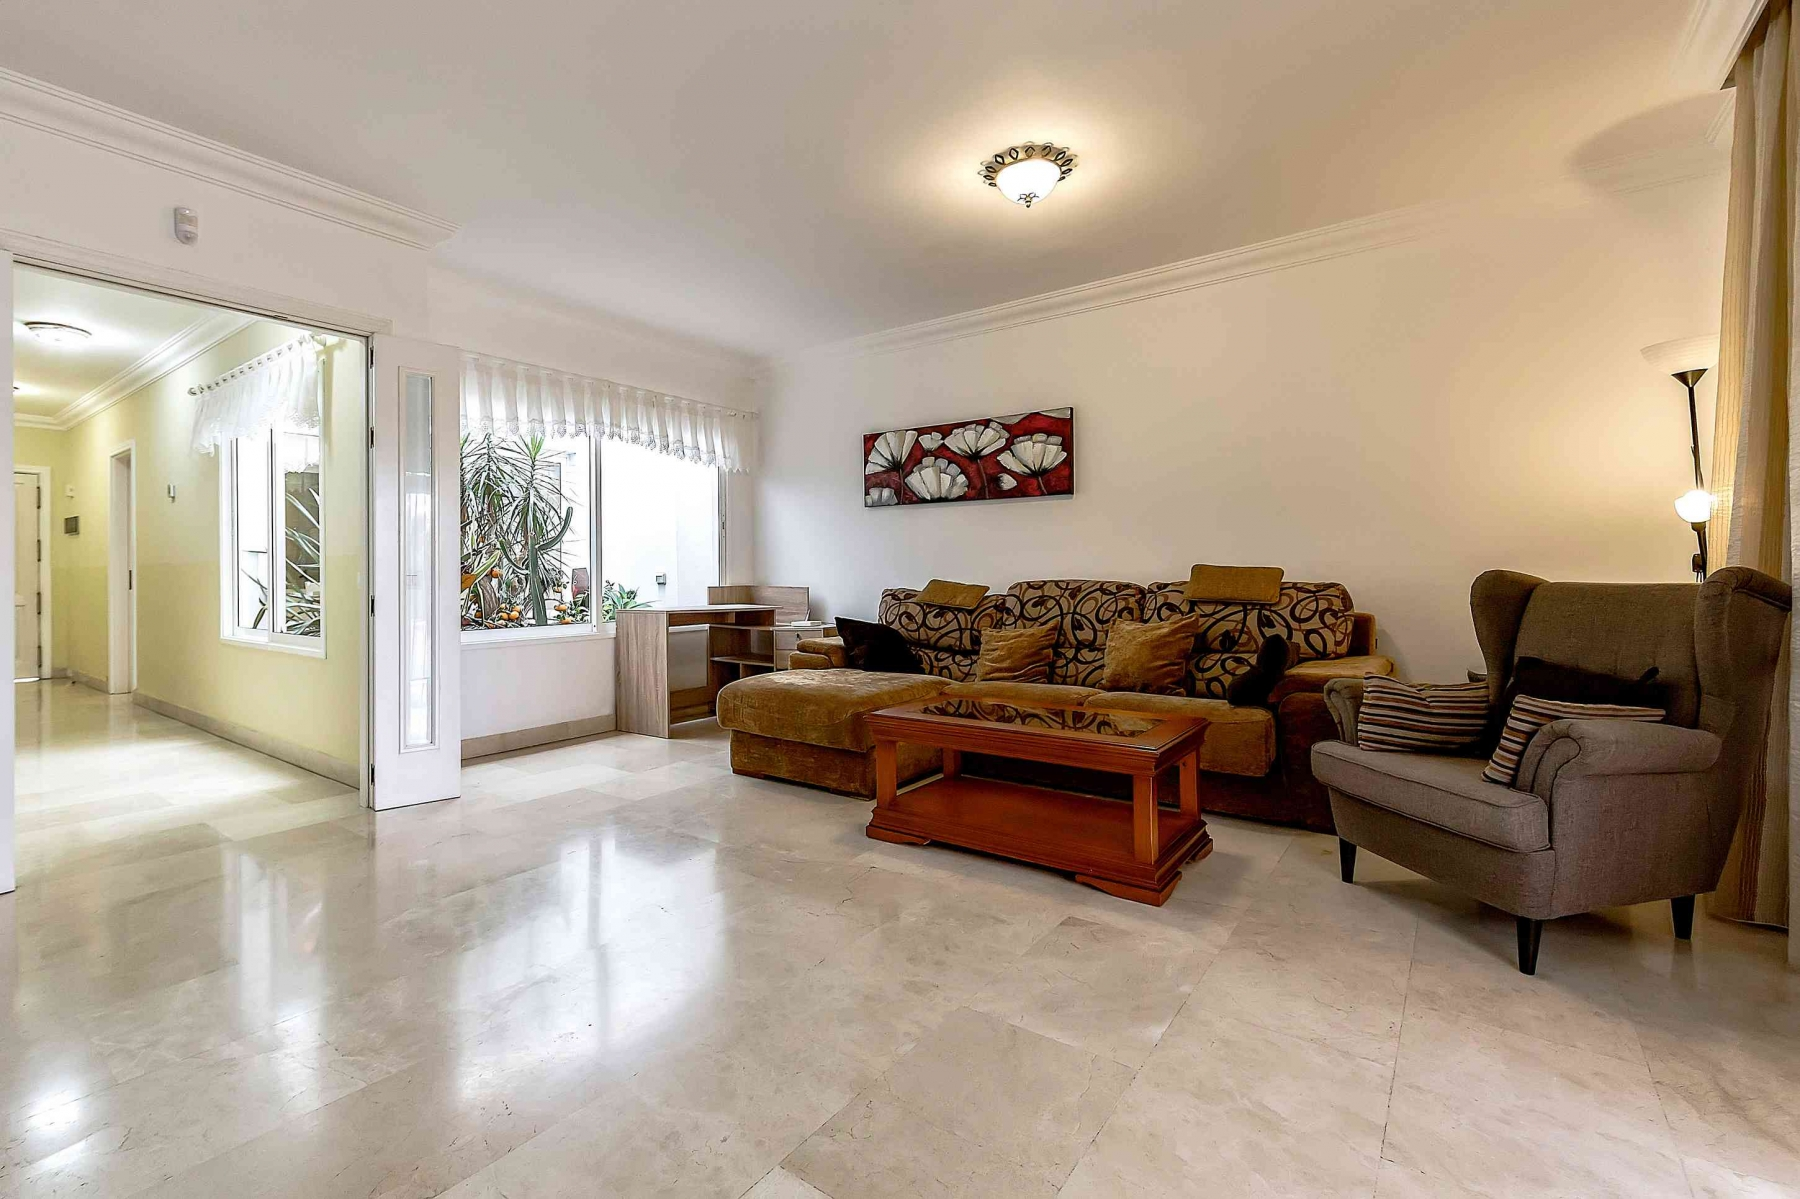 Properties for Sale in Tenerife, Canary Islands, Spain | SylkWayStar Real Estate. 3 Bedroom Townhouse LA DUQUESA. Image-24971